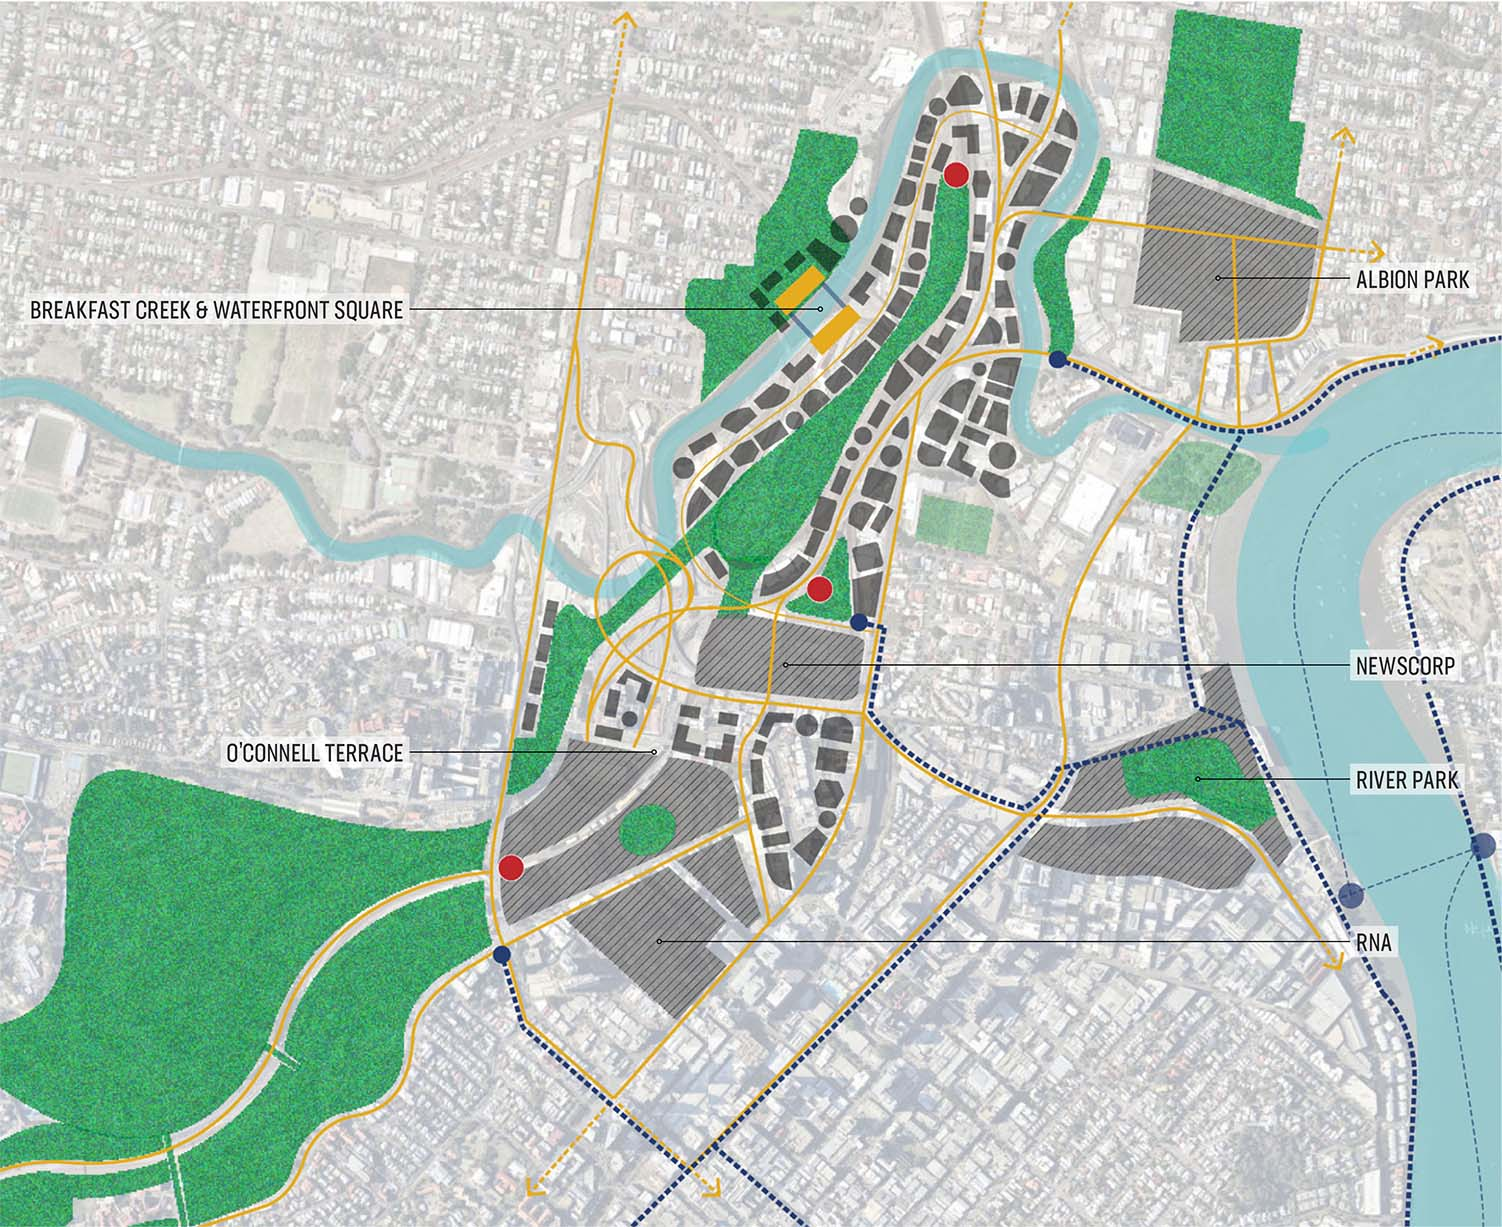 The Future Mayne Metropolis - Brisbane's Defining Green Corridor